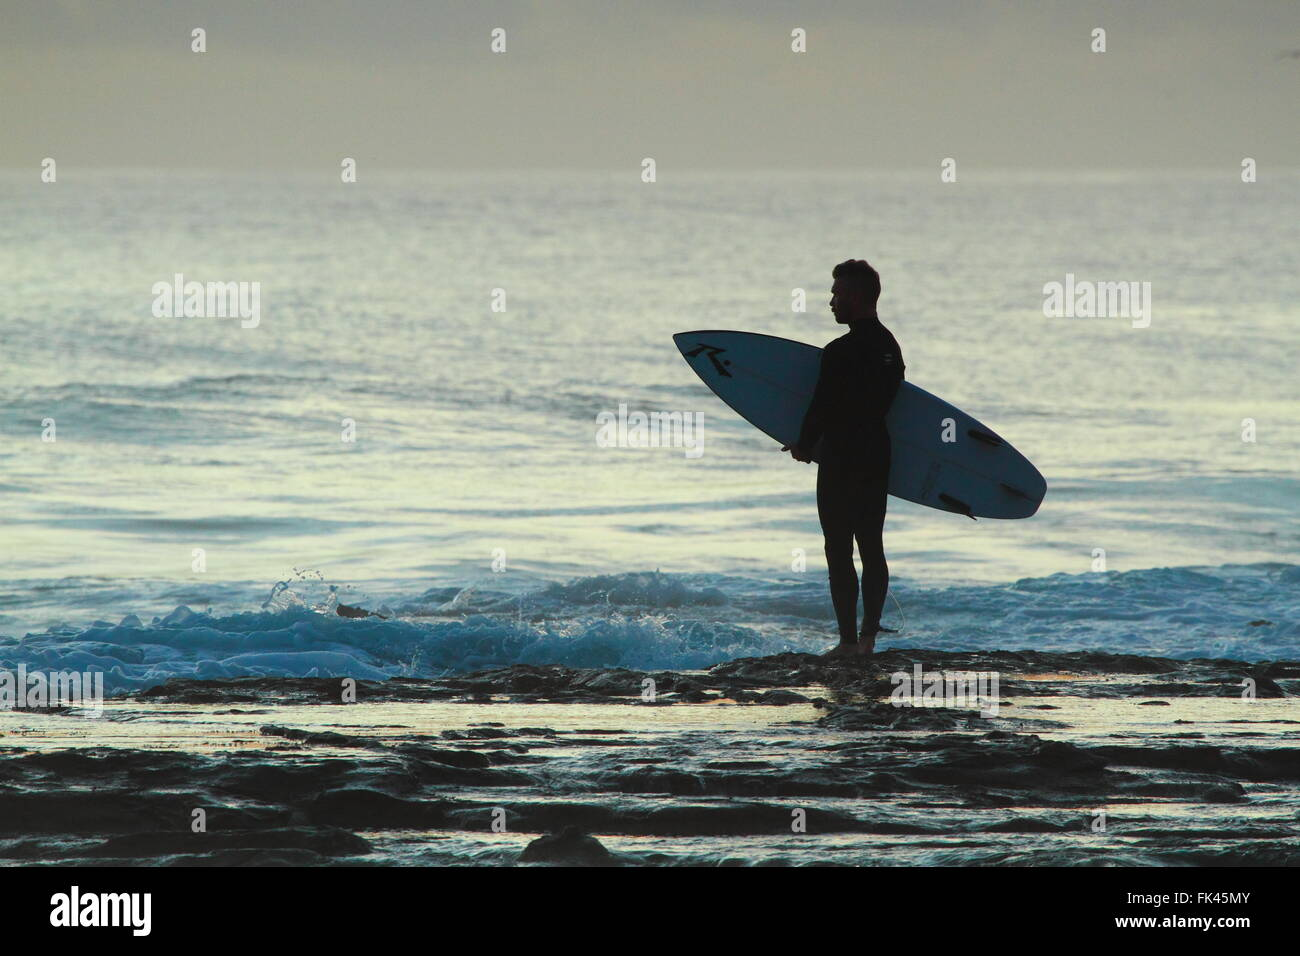 A man in his late twenties or early thirties holds his surfboard and inspects the surf at Sandon Point, Bulli, NSW, - Stock Image